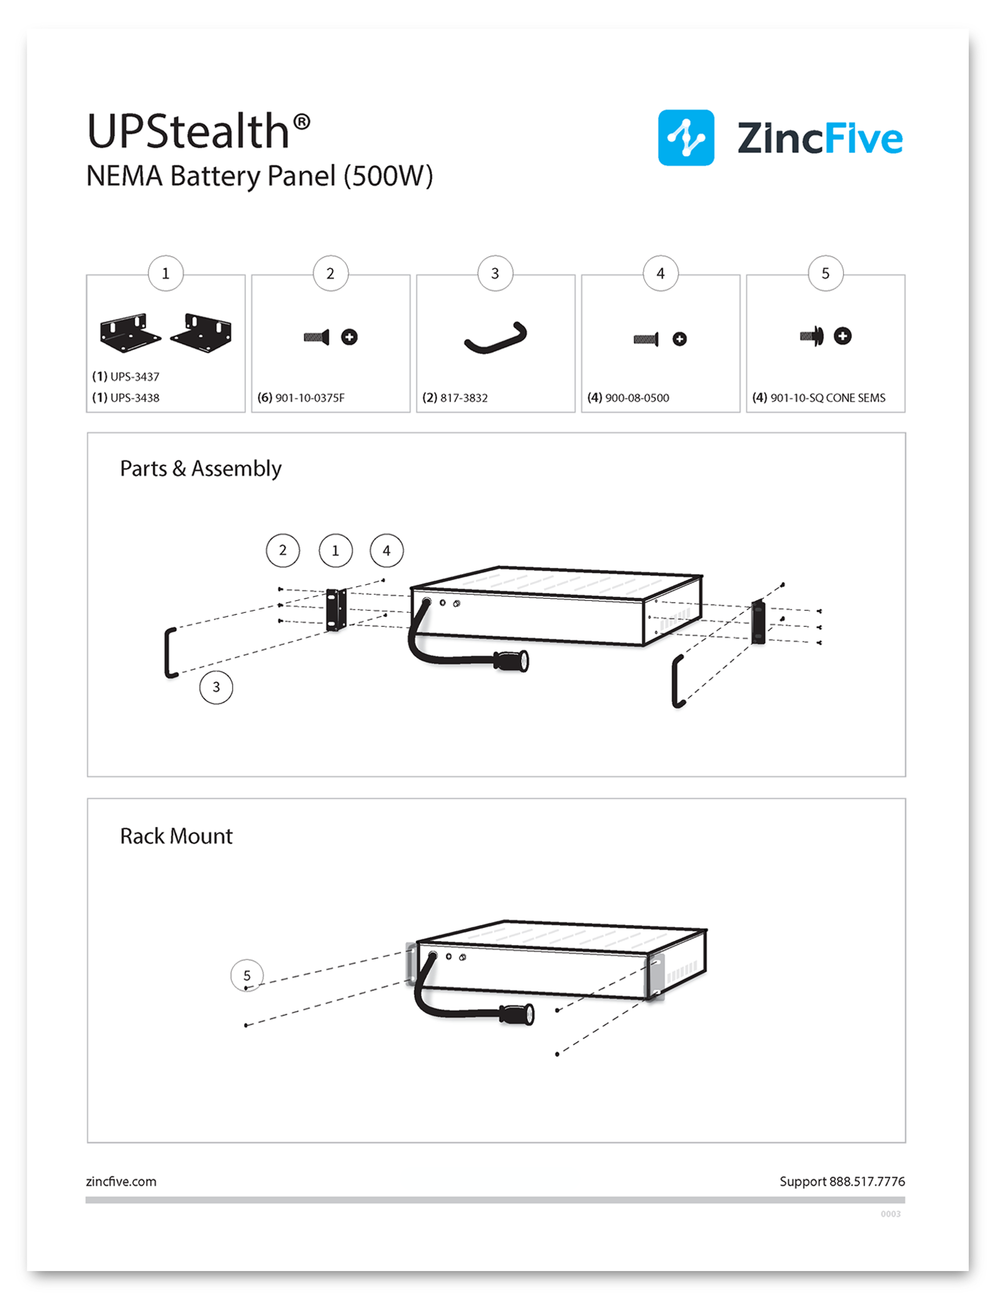 NEMA-PB-Instructions.png